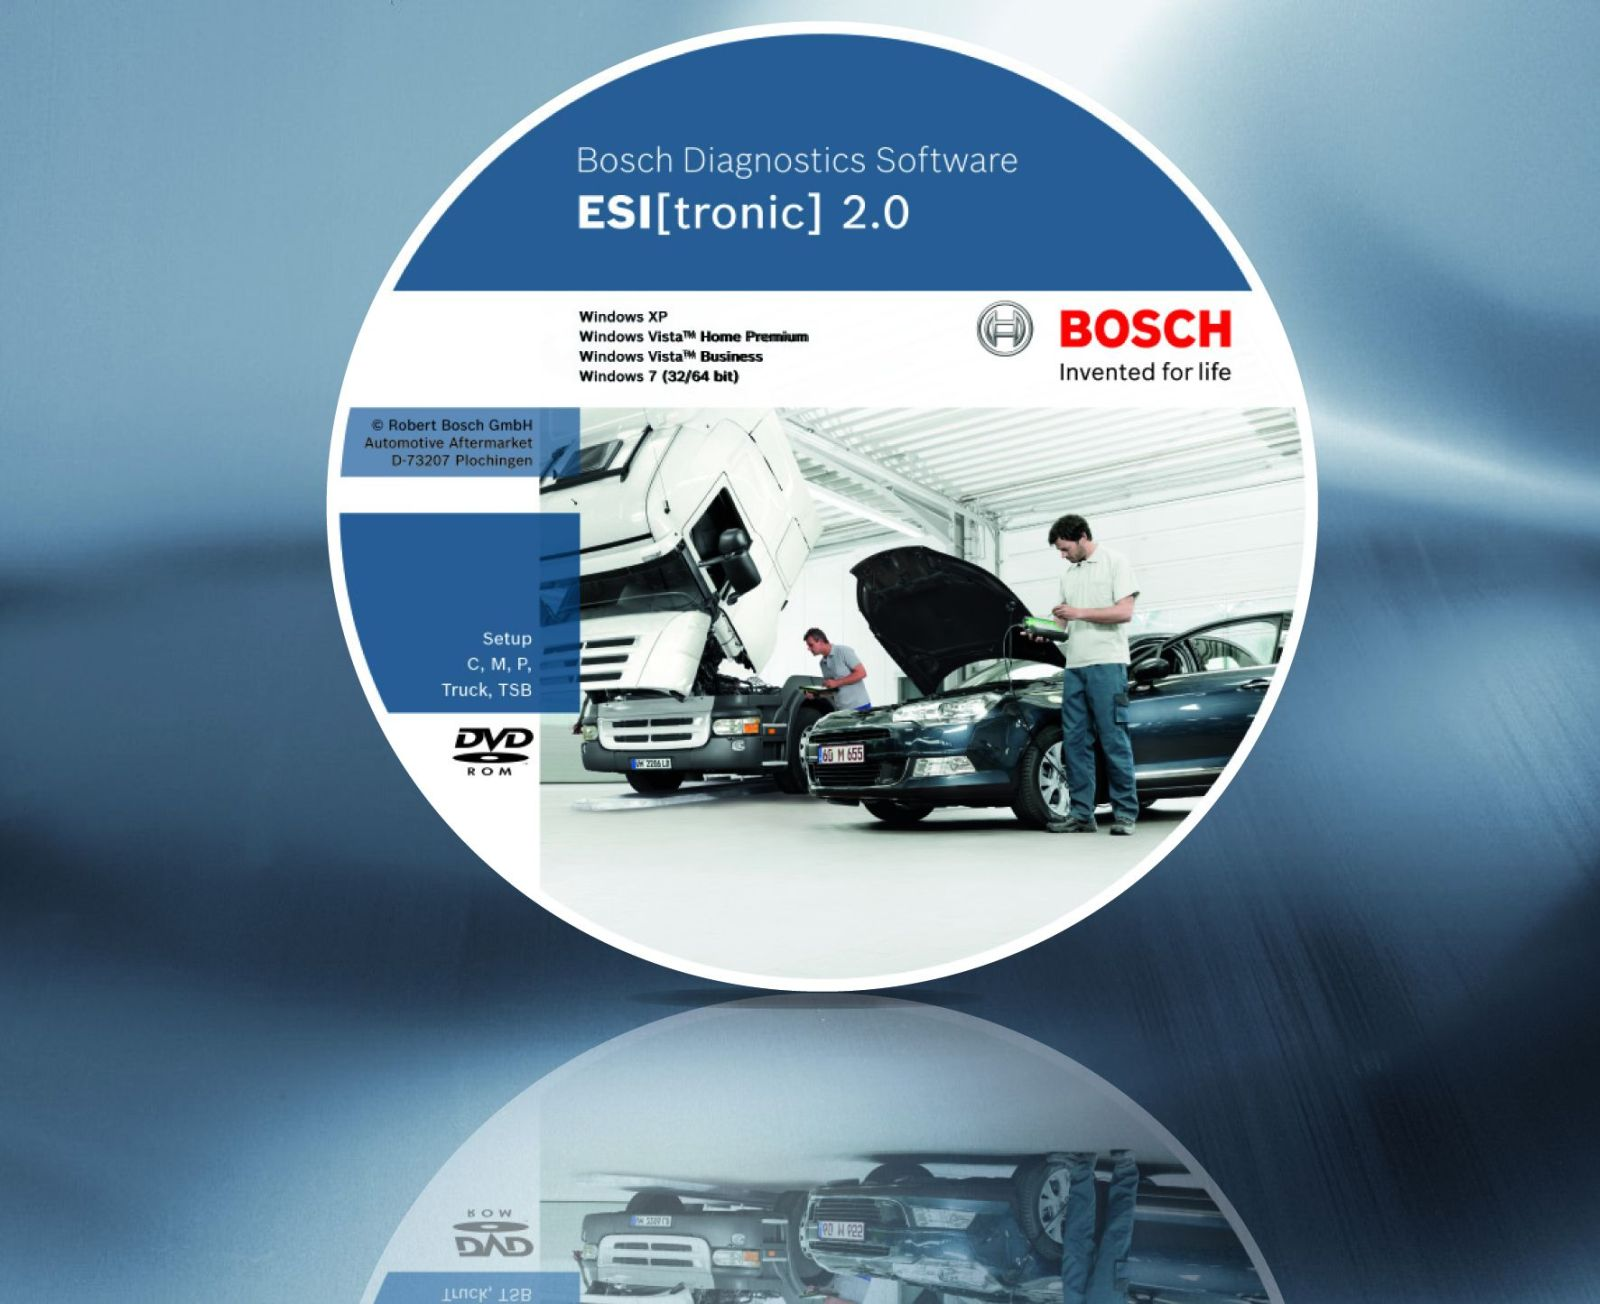 download bosch esi tronic 2014 cracked